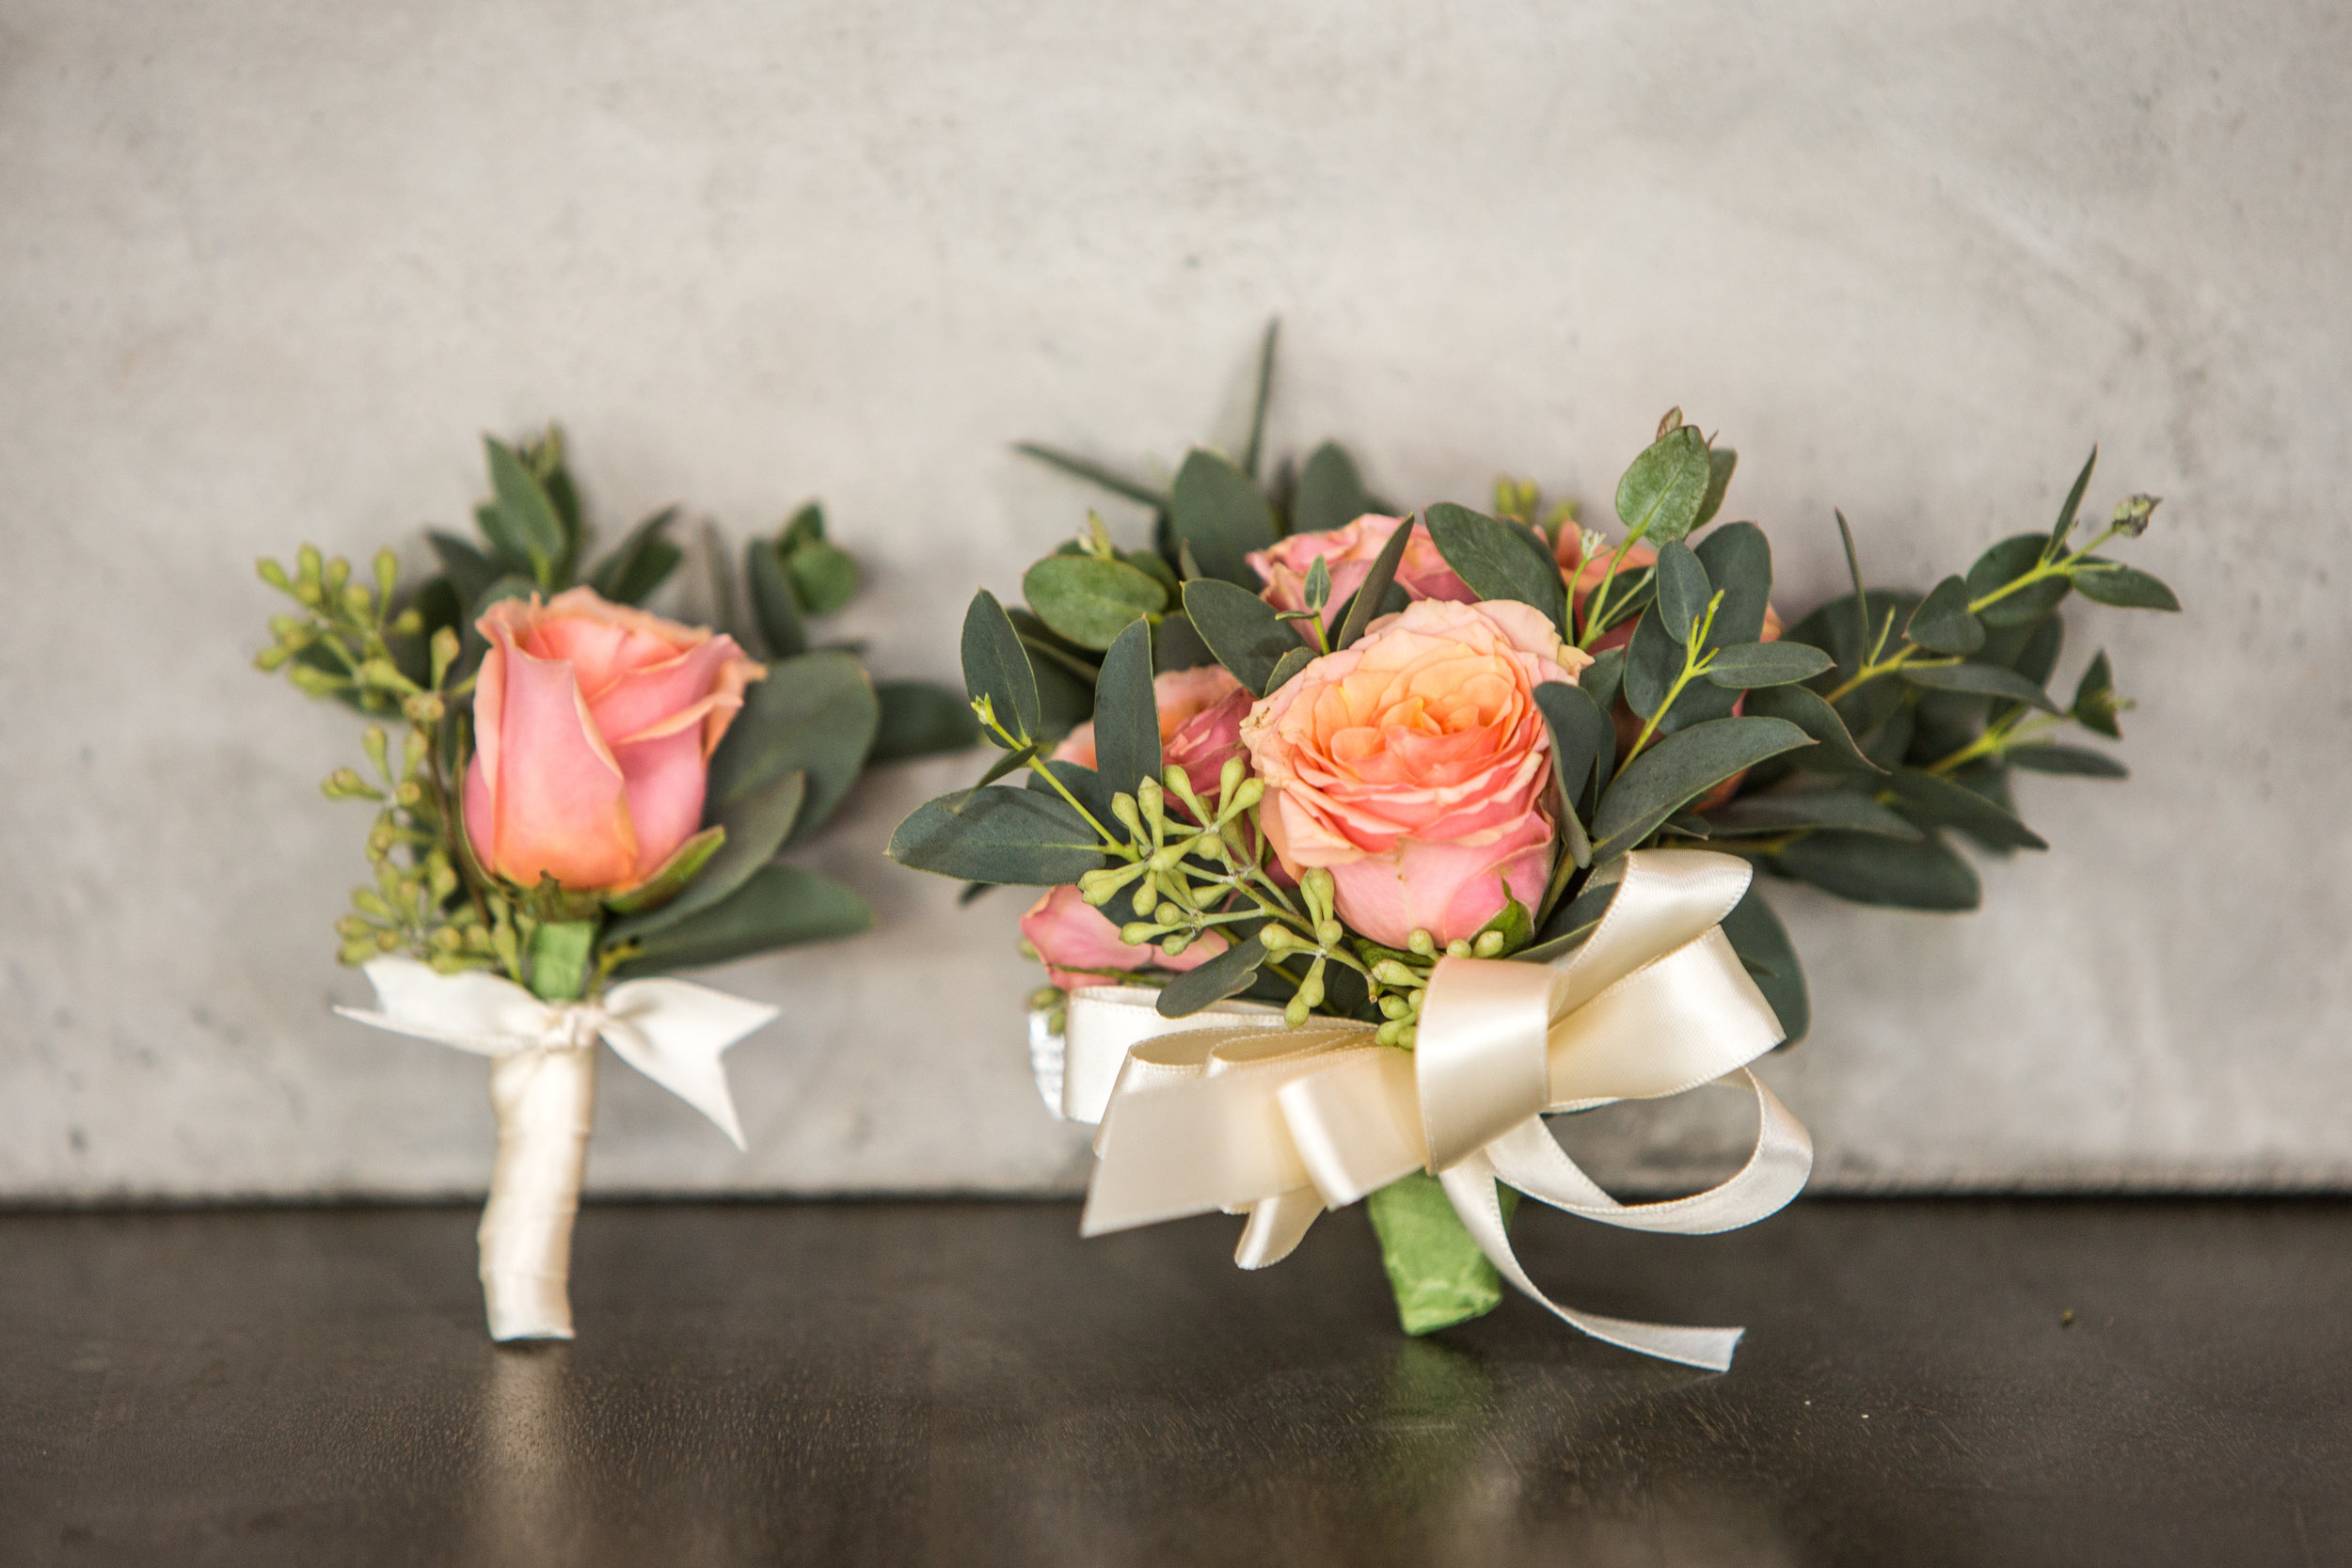 Homecoming Corsage-Boutonniere duo in peach $50 (Sold separately - Corsage $35, Boutonniere $20)